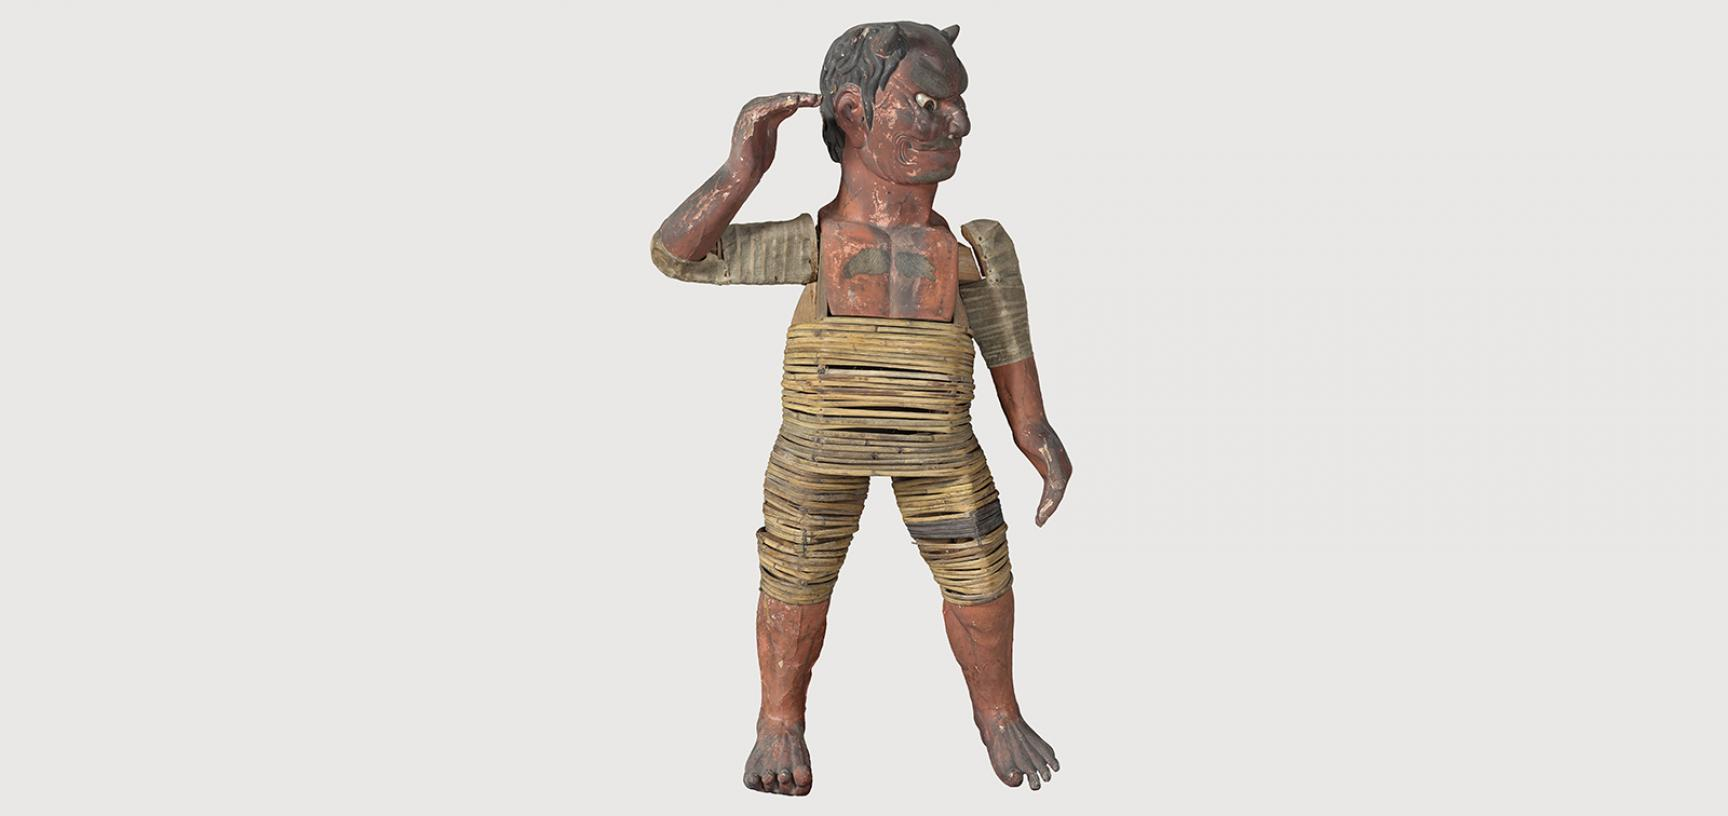 Body of oni figure (1964.1.2.1-4)